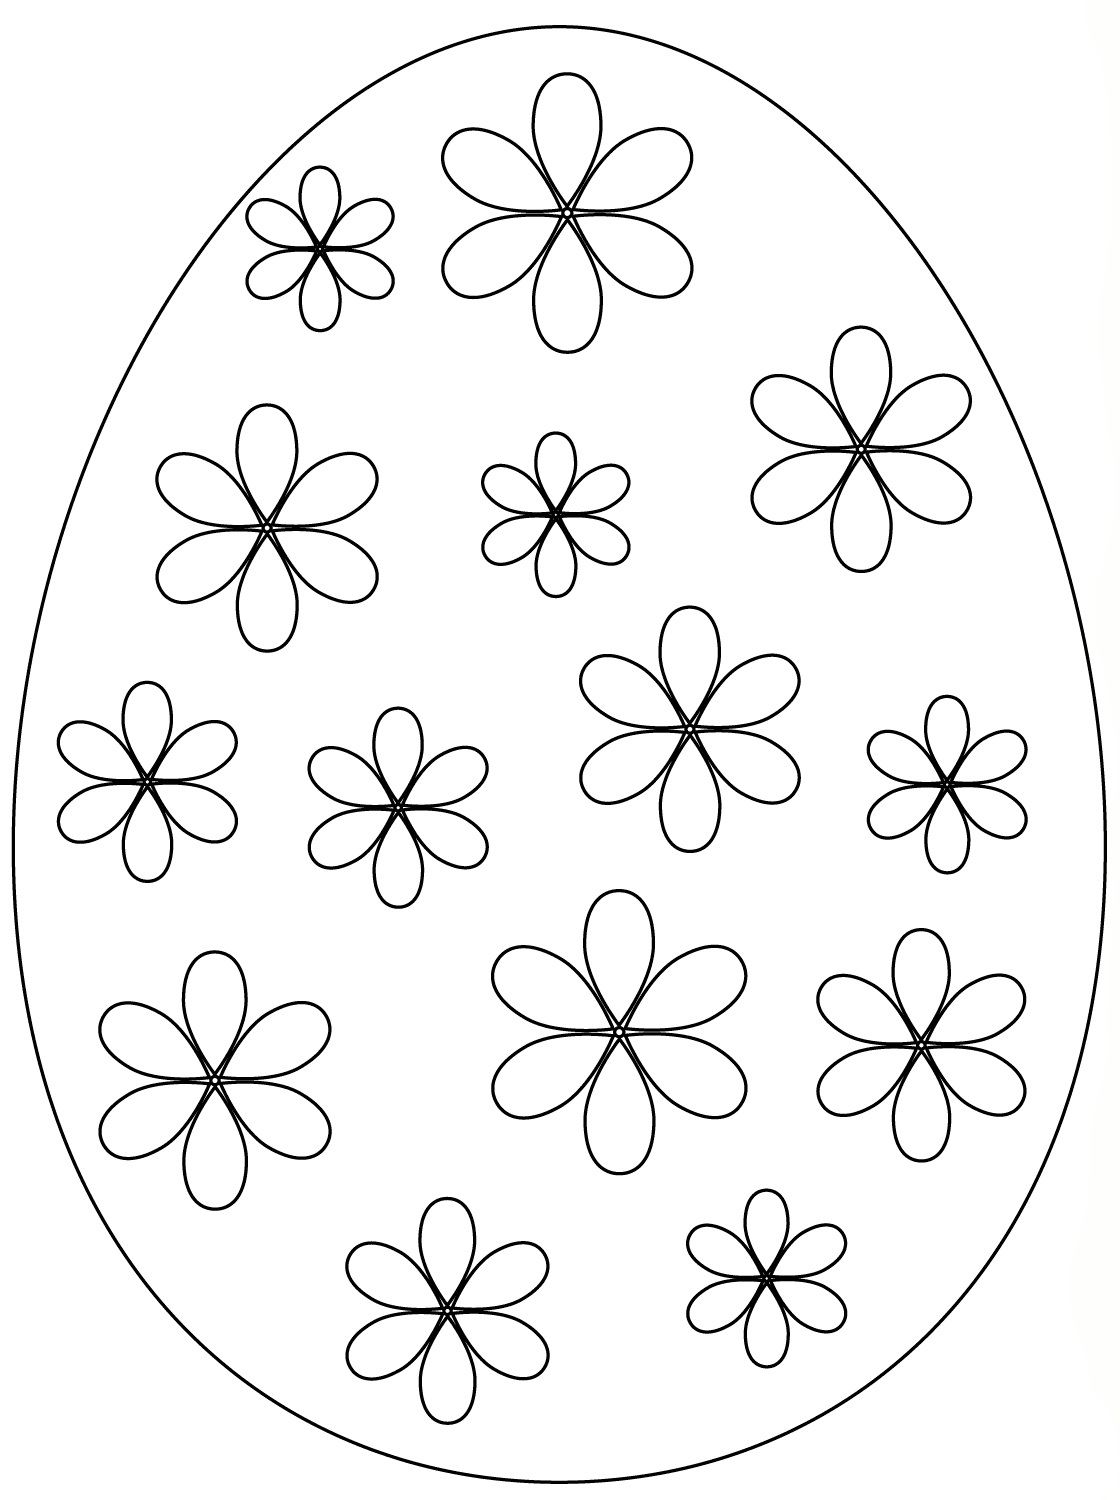 Easter Egg Simple Flowers Coloring Page